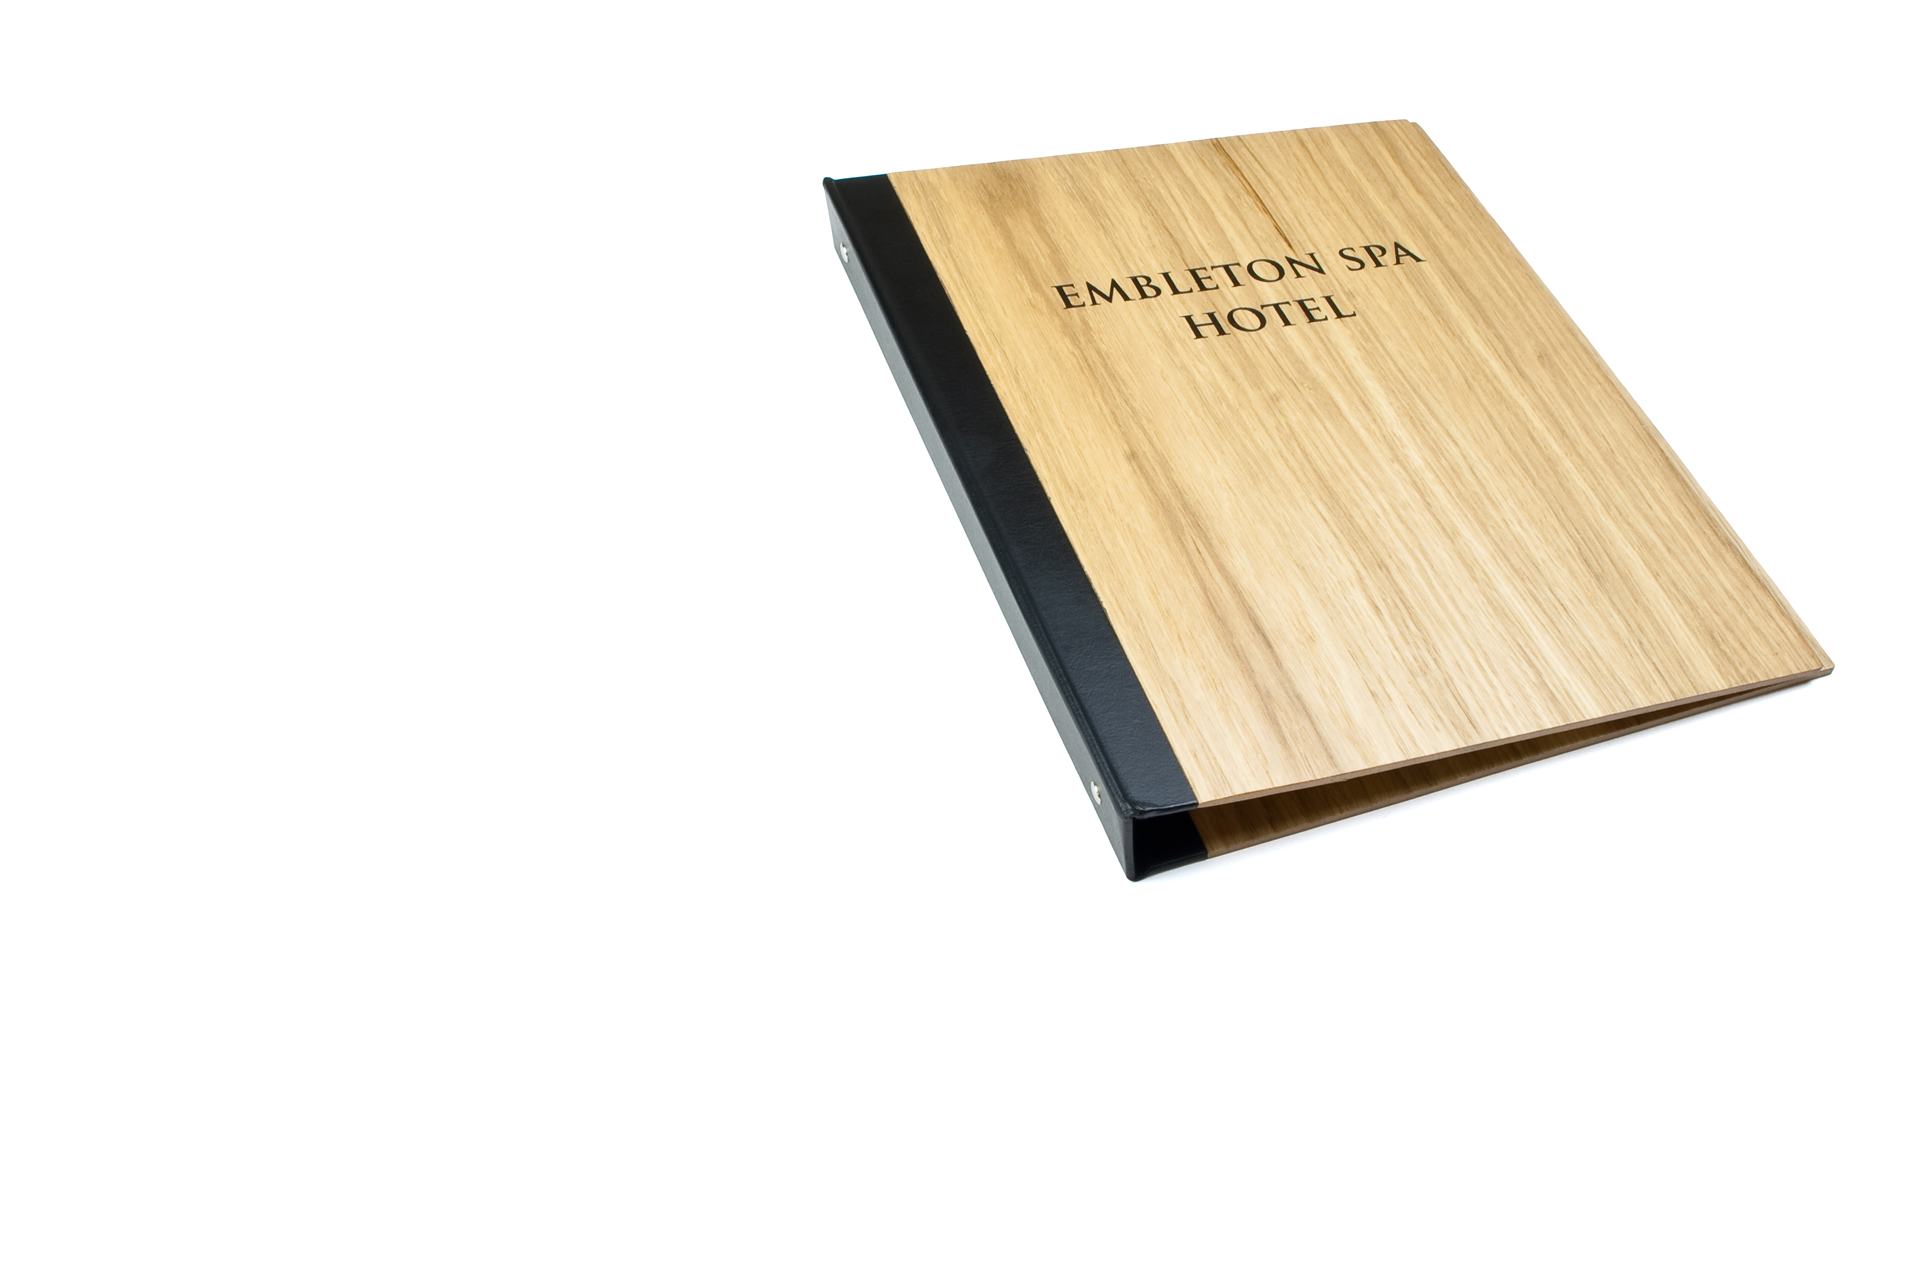 guest info folder spa and hotel binder in cutom made wood